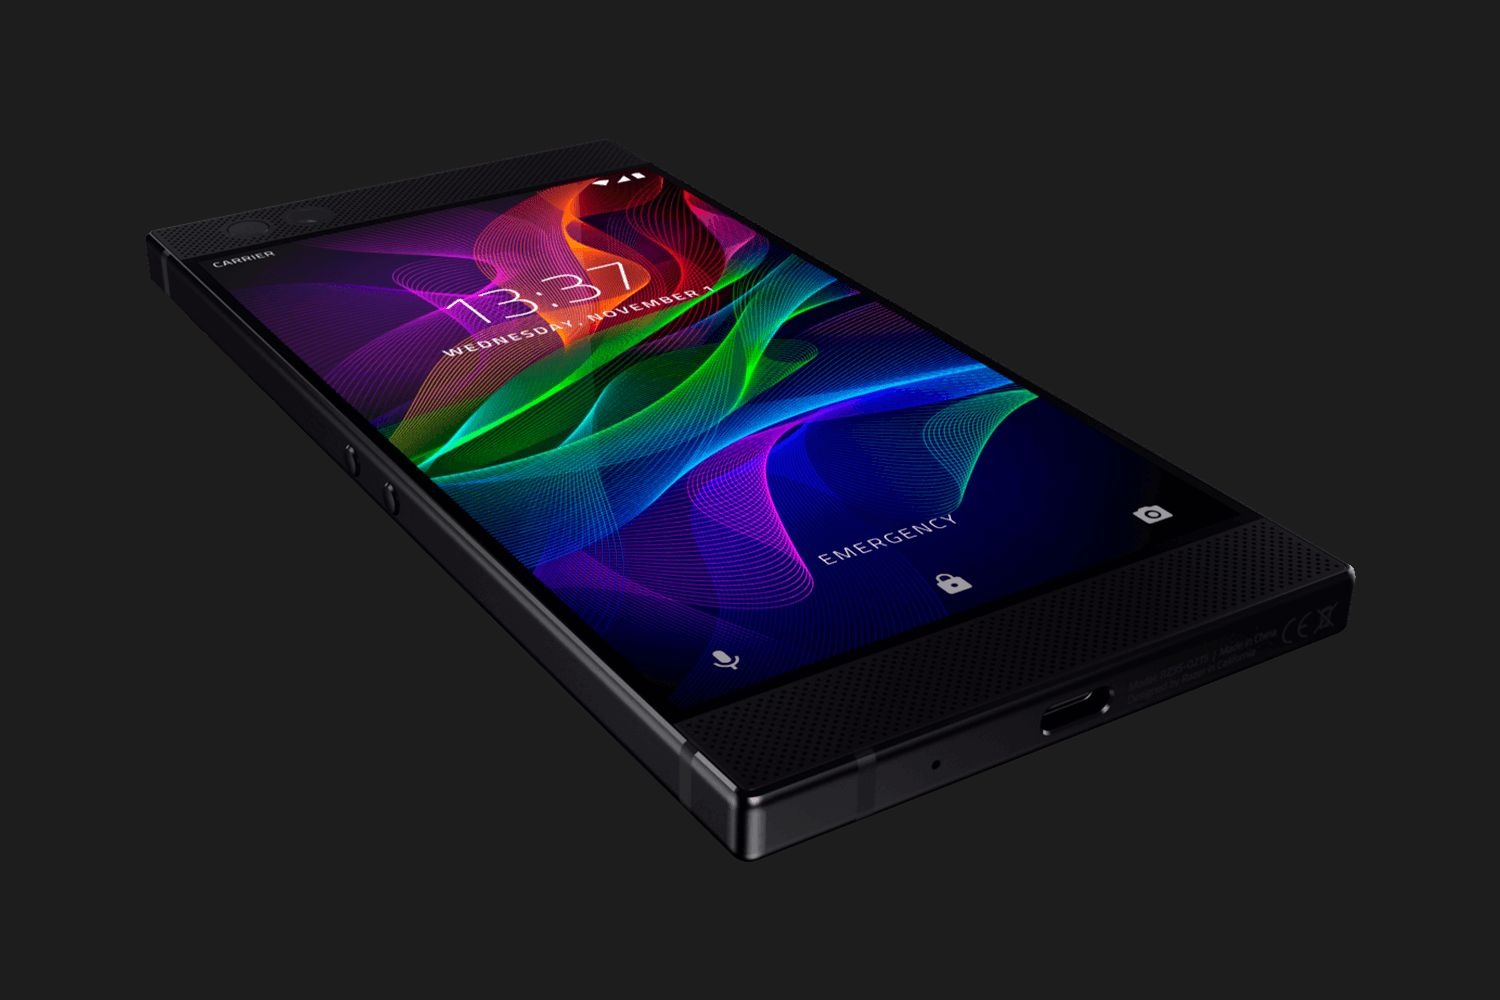 razer-phone-gallery-1500x1000-11